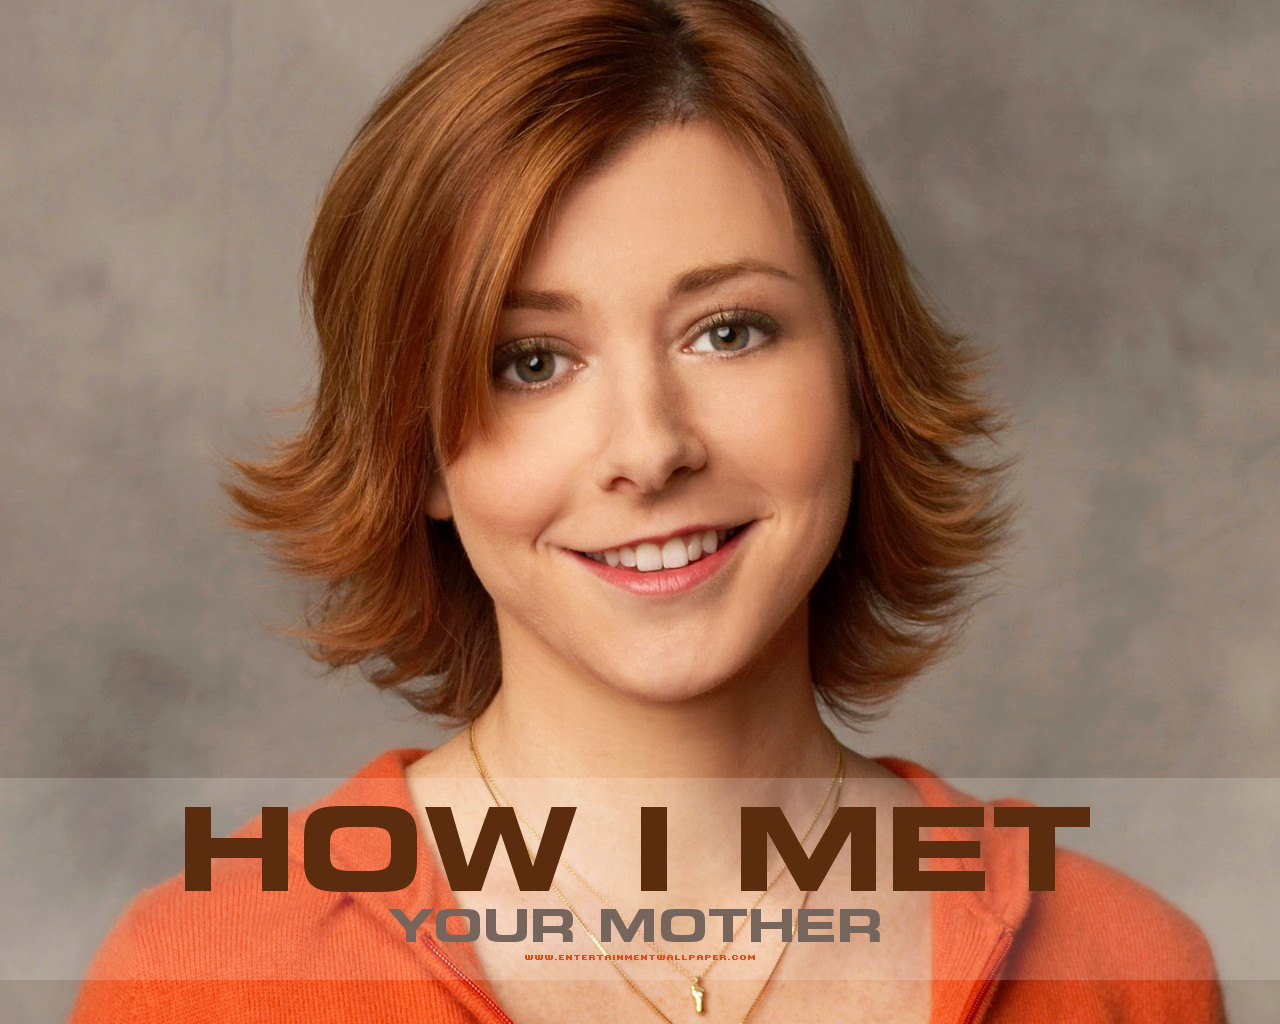 http://3.bp.blogspot.com/-VORLkB8D59k/TuVjAgiBQLI/AAAAAAAAAOg/6GQDc0tmR3c/s1600/3d-alyson-hannigan-as-lily-aldrin-in-how-i-met-your-mother-backgrounds-wallpapers.jpg